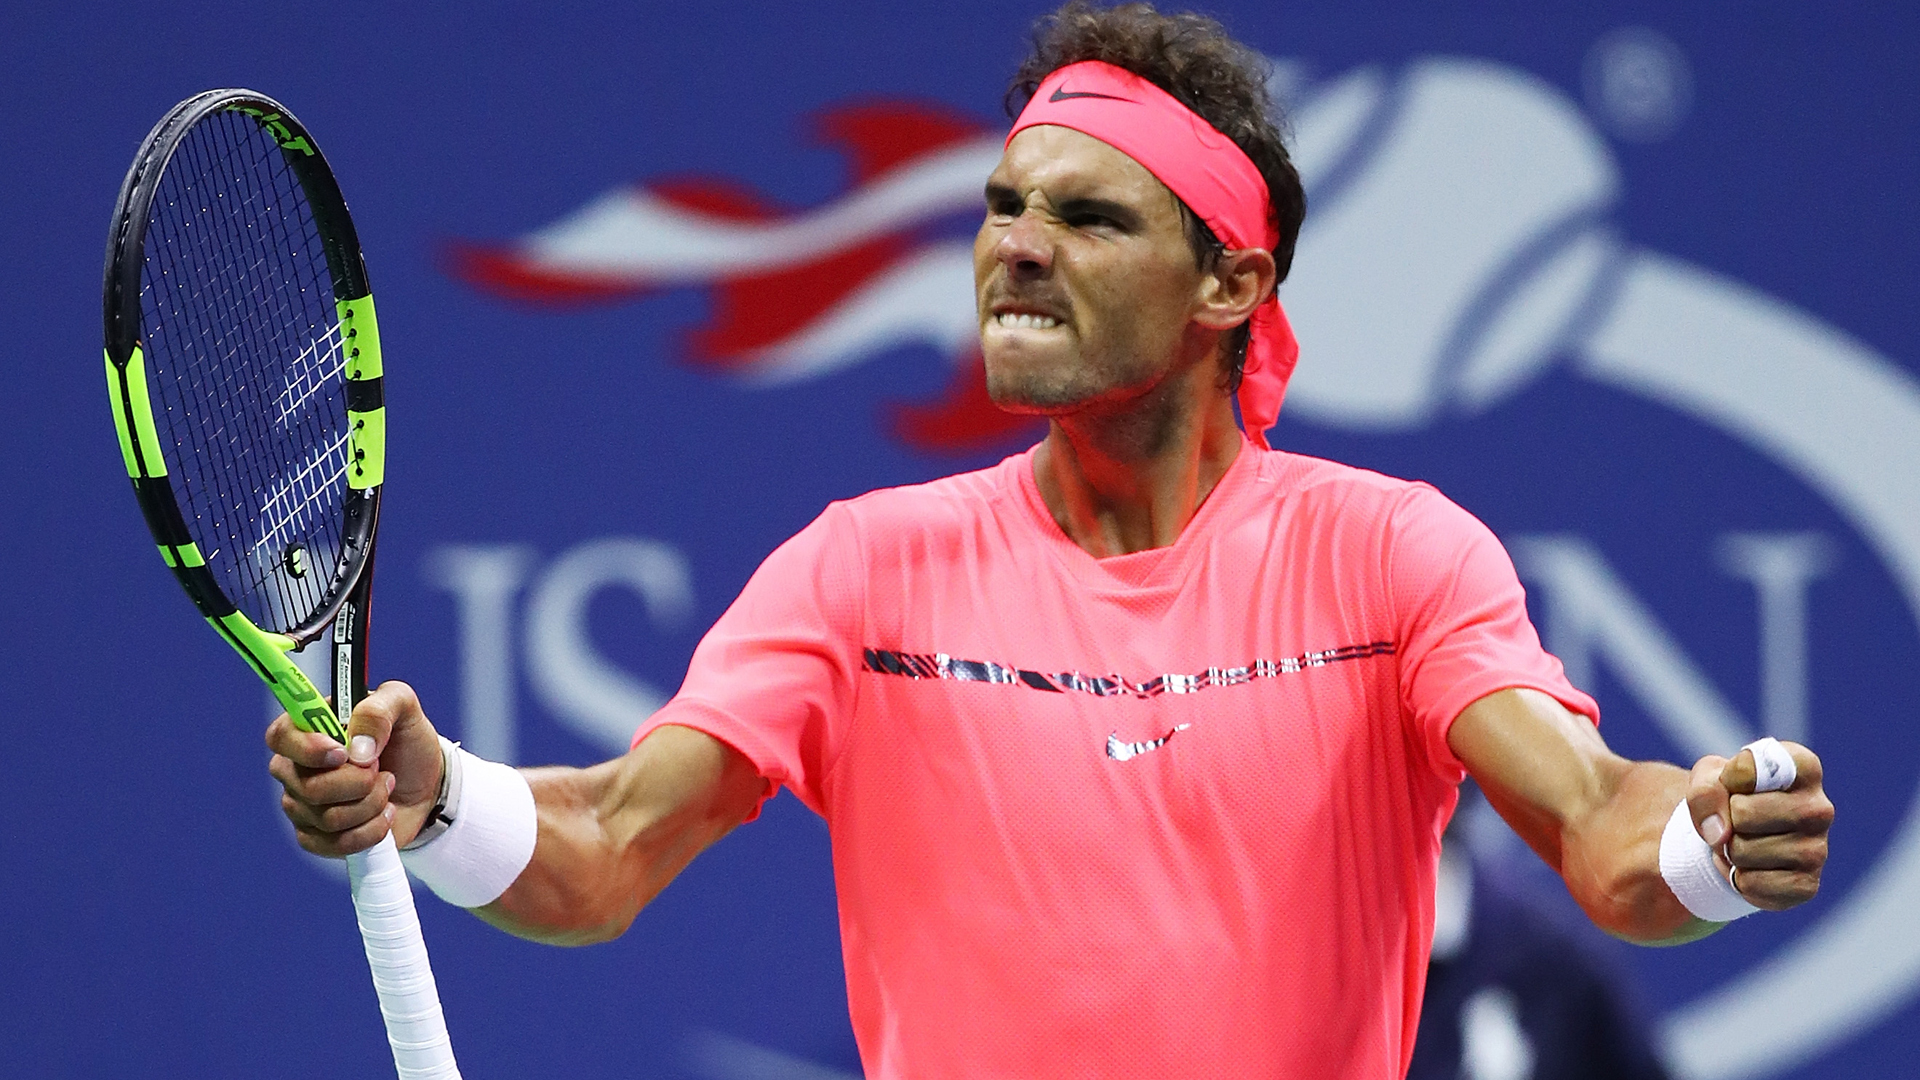 Rafael Nadal fights back to beat Leonardo Mayer at US Open